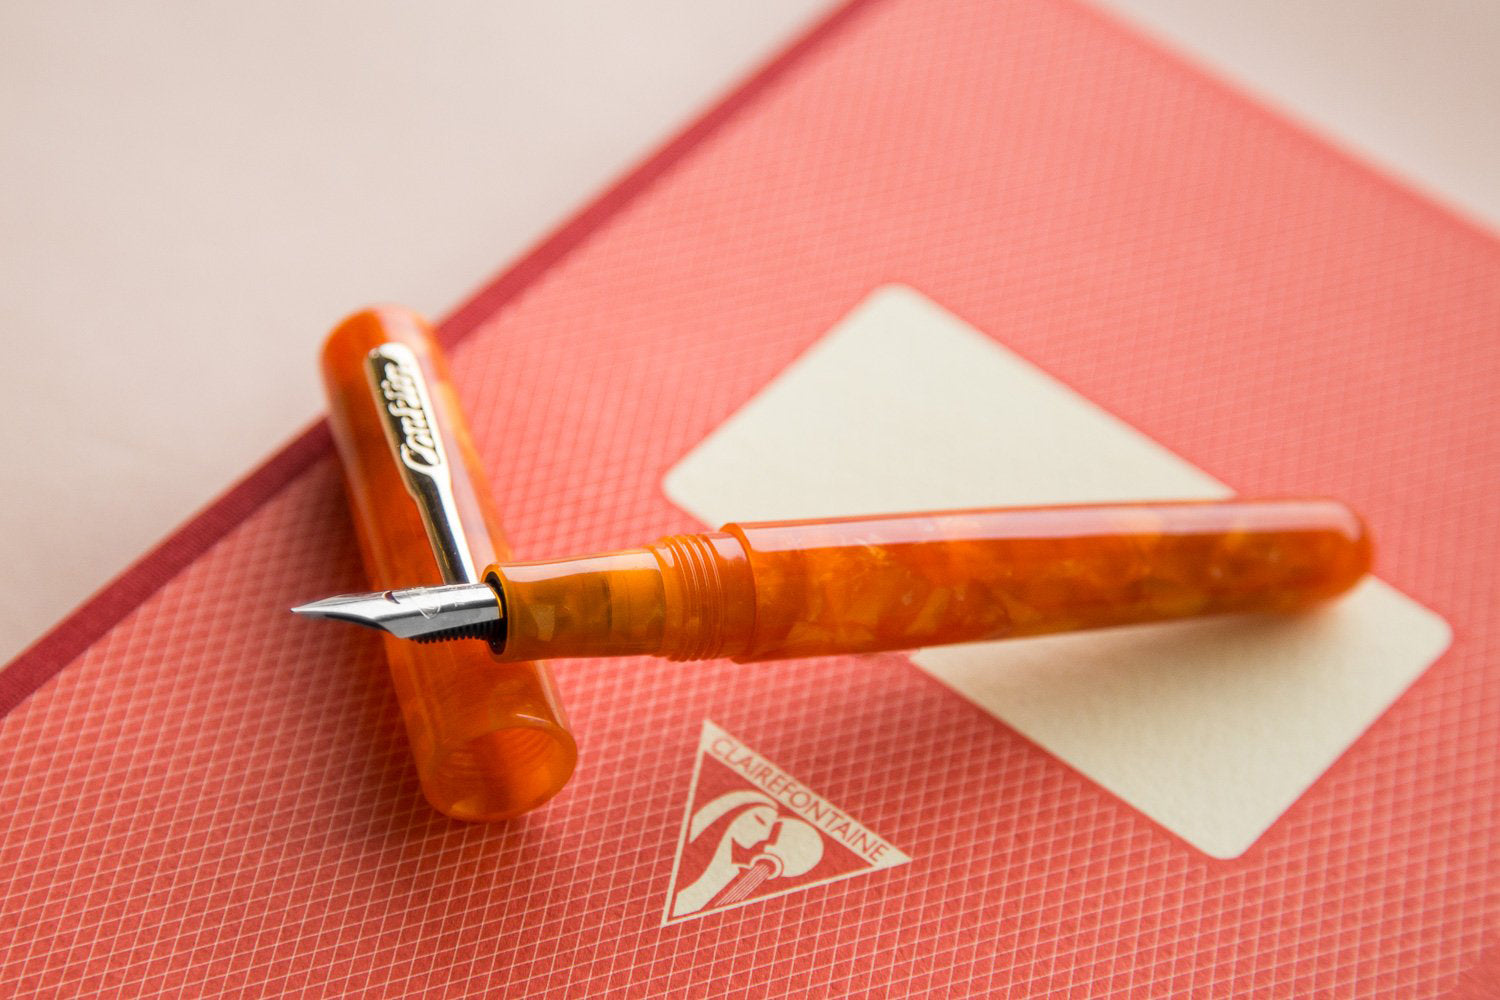 Conklin All American Fountain Pen - Sunburst Orange